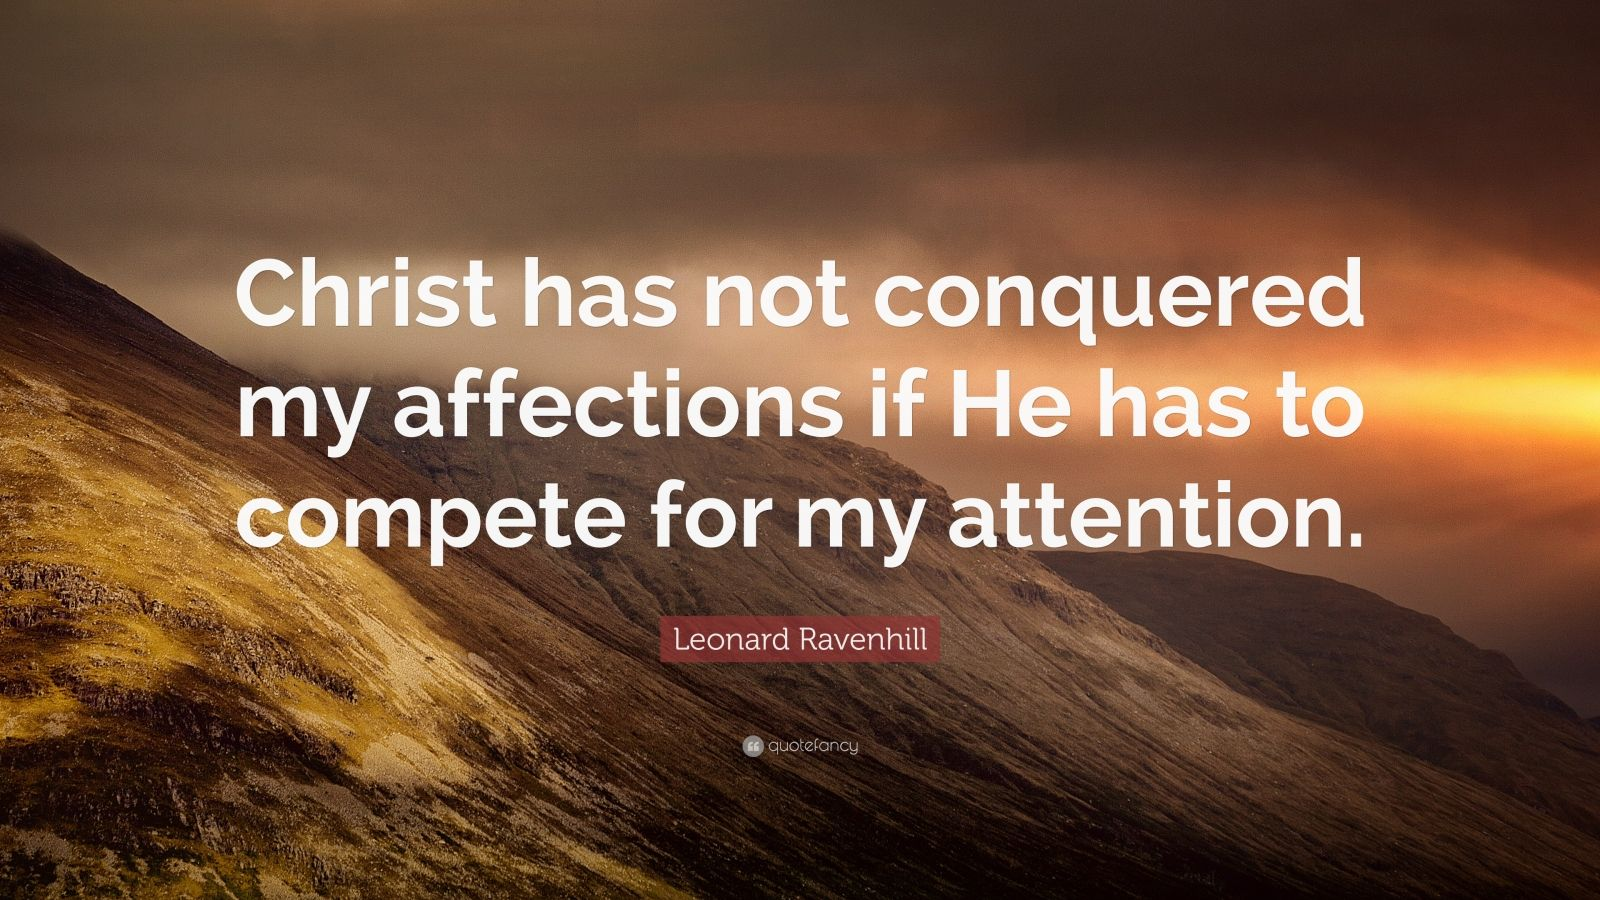 """Leonard Ravenhill Quote: """"Christ has not conquered my affections if He has to compete for my attention."""""""